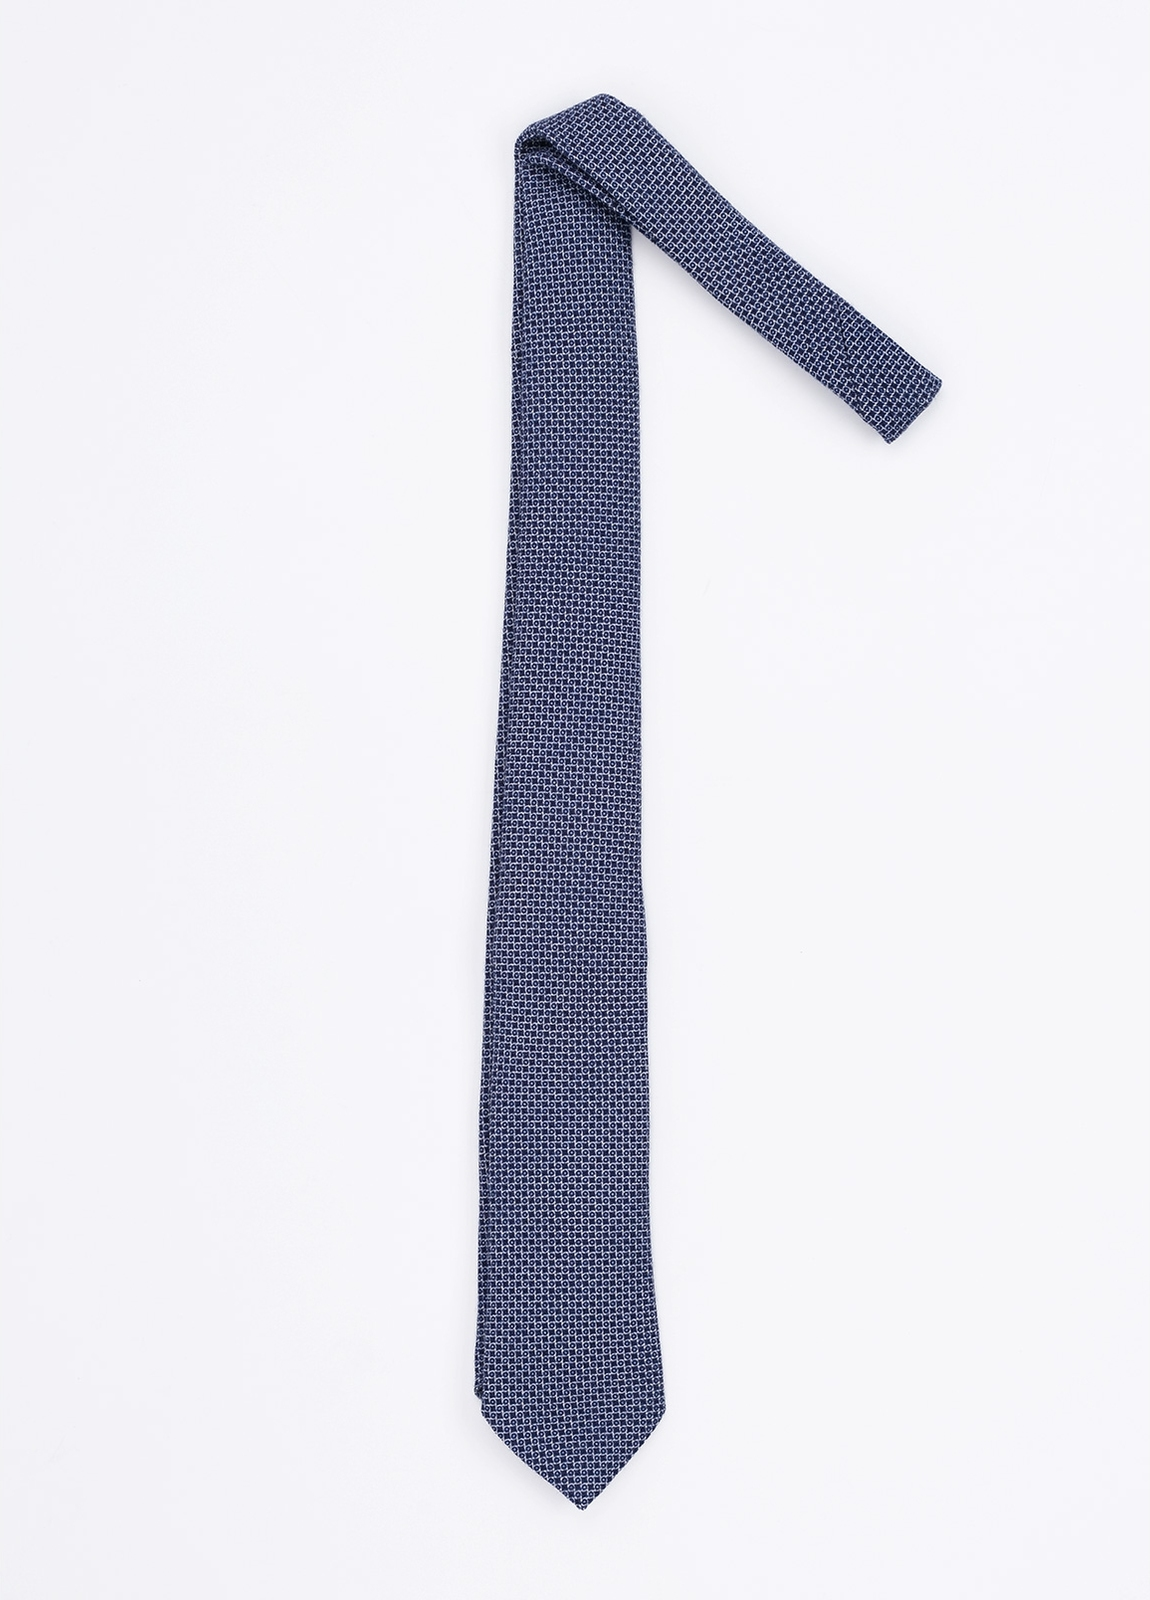 Corbata Formal Wear microdibujo, color azul marino. Pala 7,5 cm. 100% Lana.